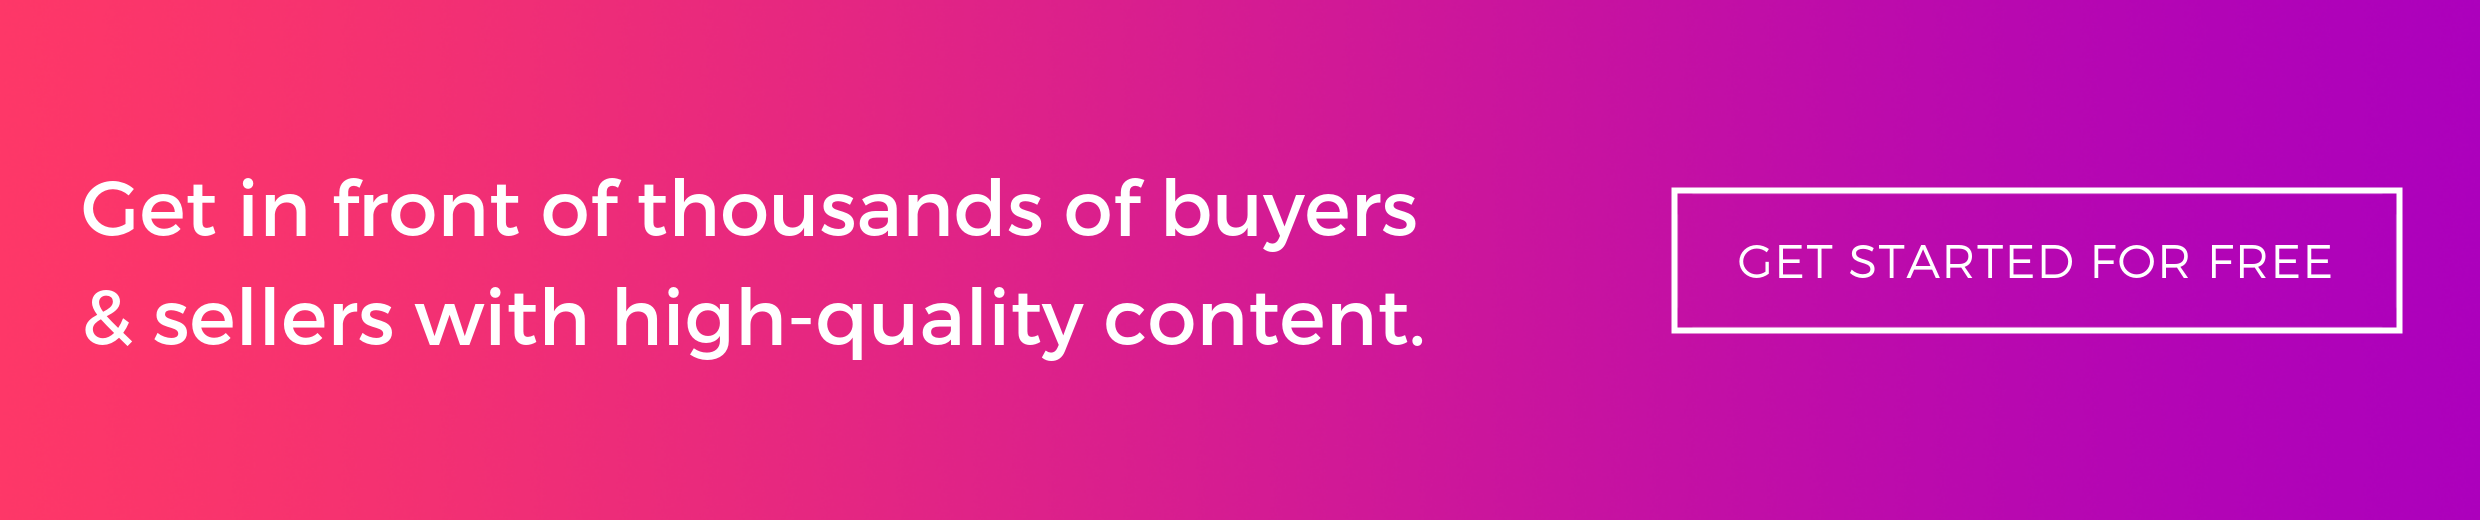 Get in front of thousands of buyers and sellers with high-quality content